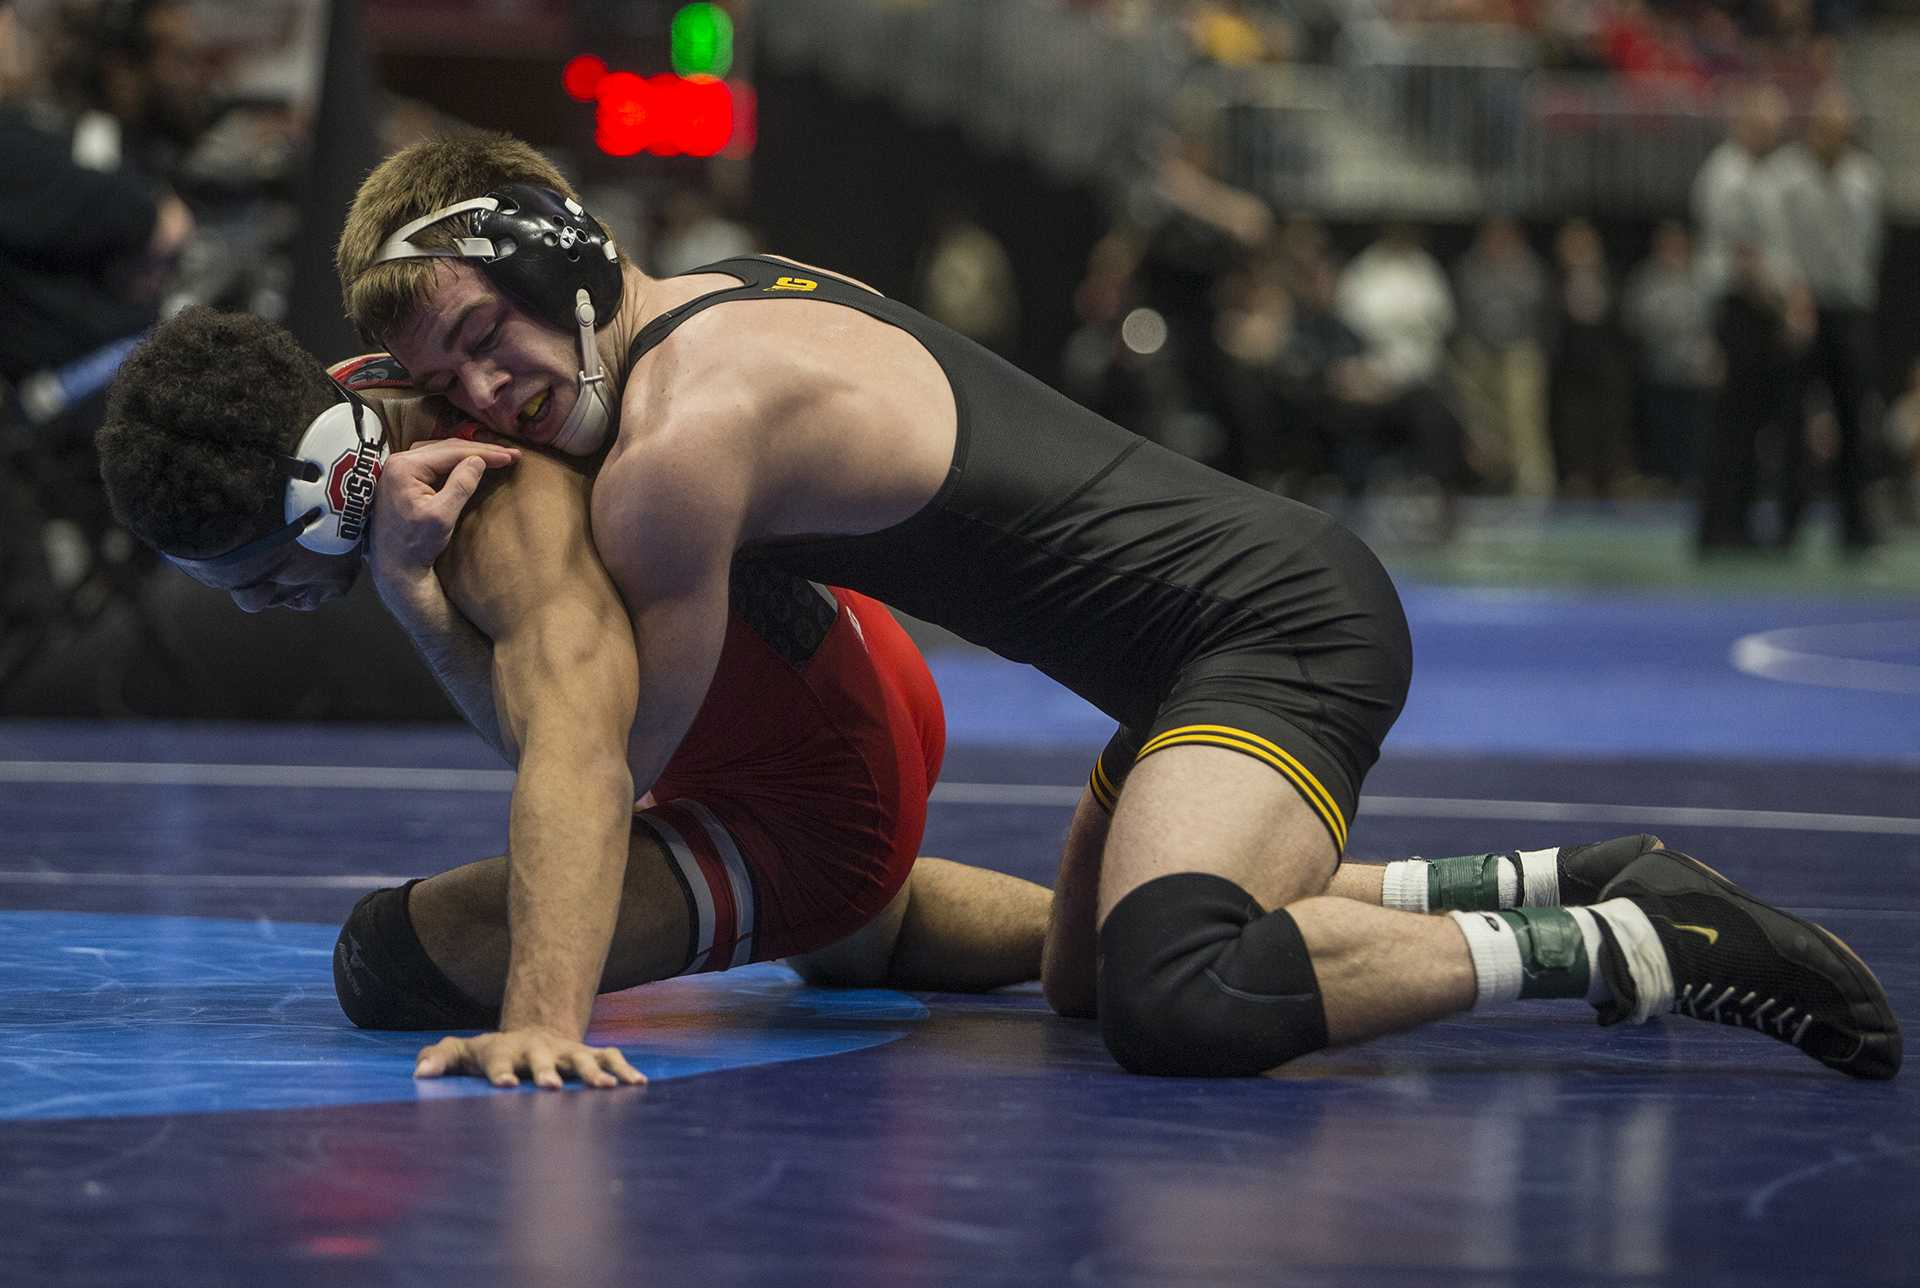 Iowa's 149-pound Brandon Sorensen competes against Ohio State's Ke-Shawn Hayes during Session 4 of the NCAAs Wrestling Championships at Quicken Loans Arena in Cleveland, OH on Thursday, March 16, 2018. Sorensen defeated Hayes by major decision 9-0. (Ben Allan Smith/The Daily Iowan)